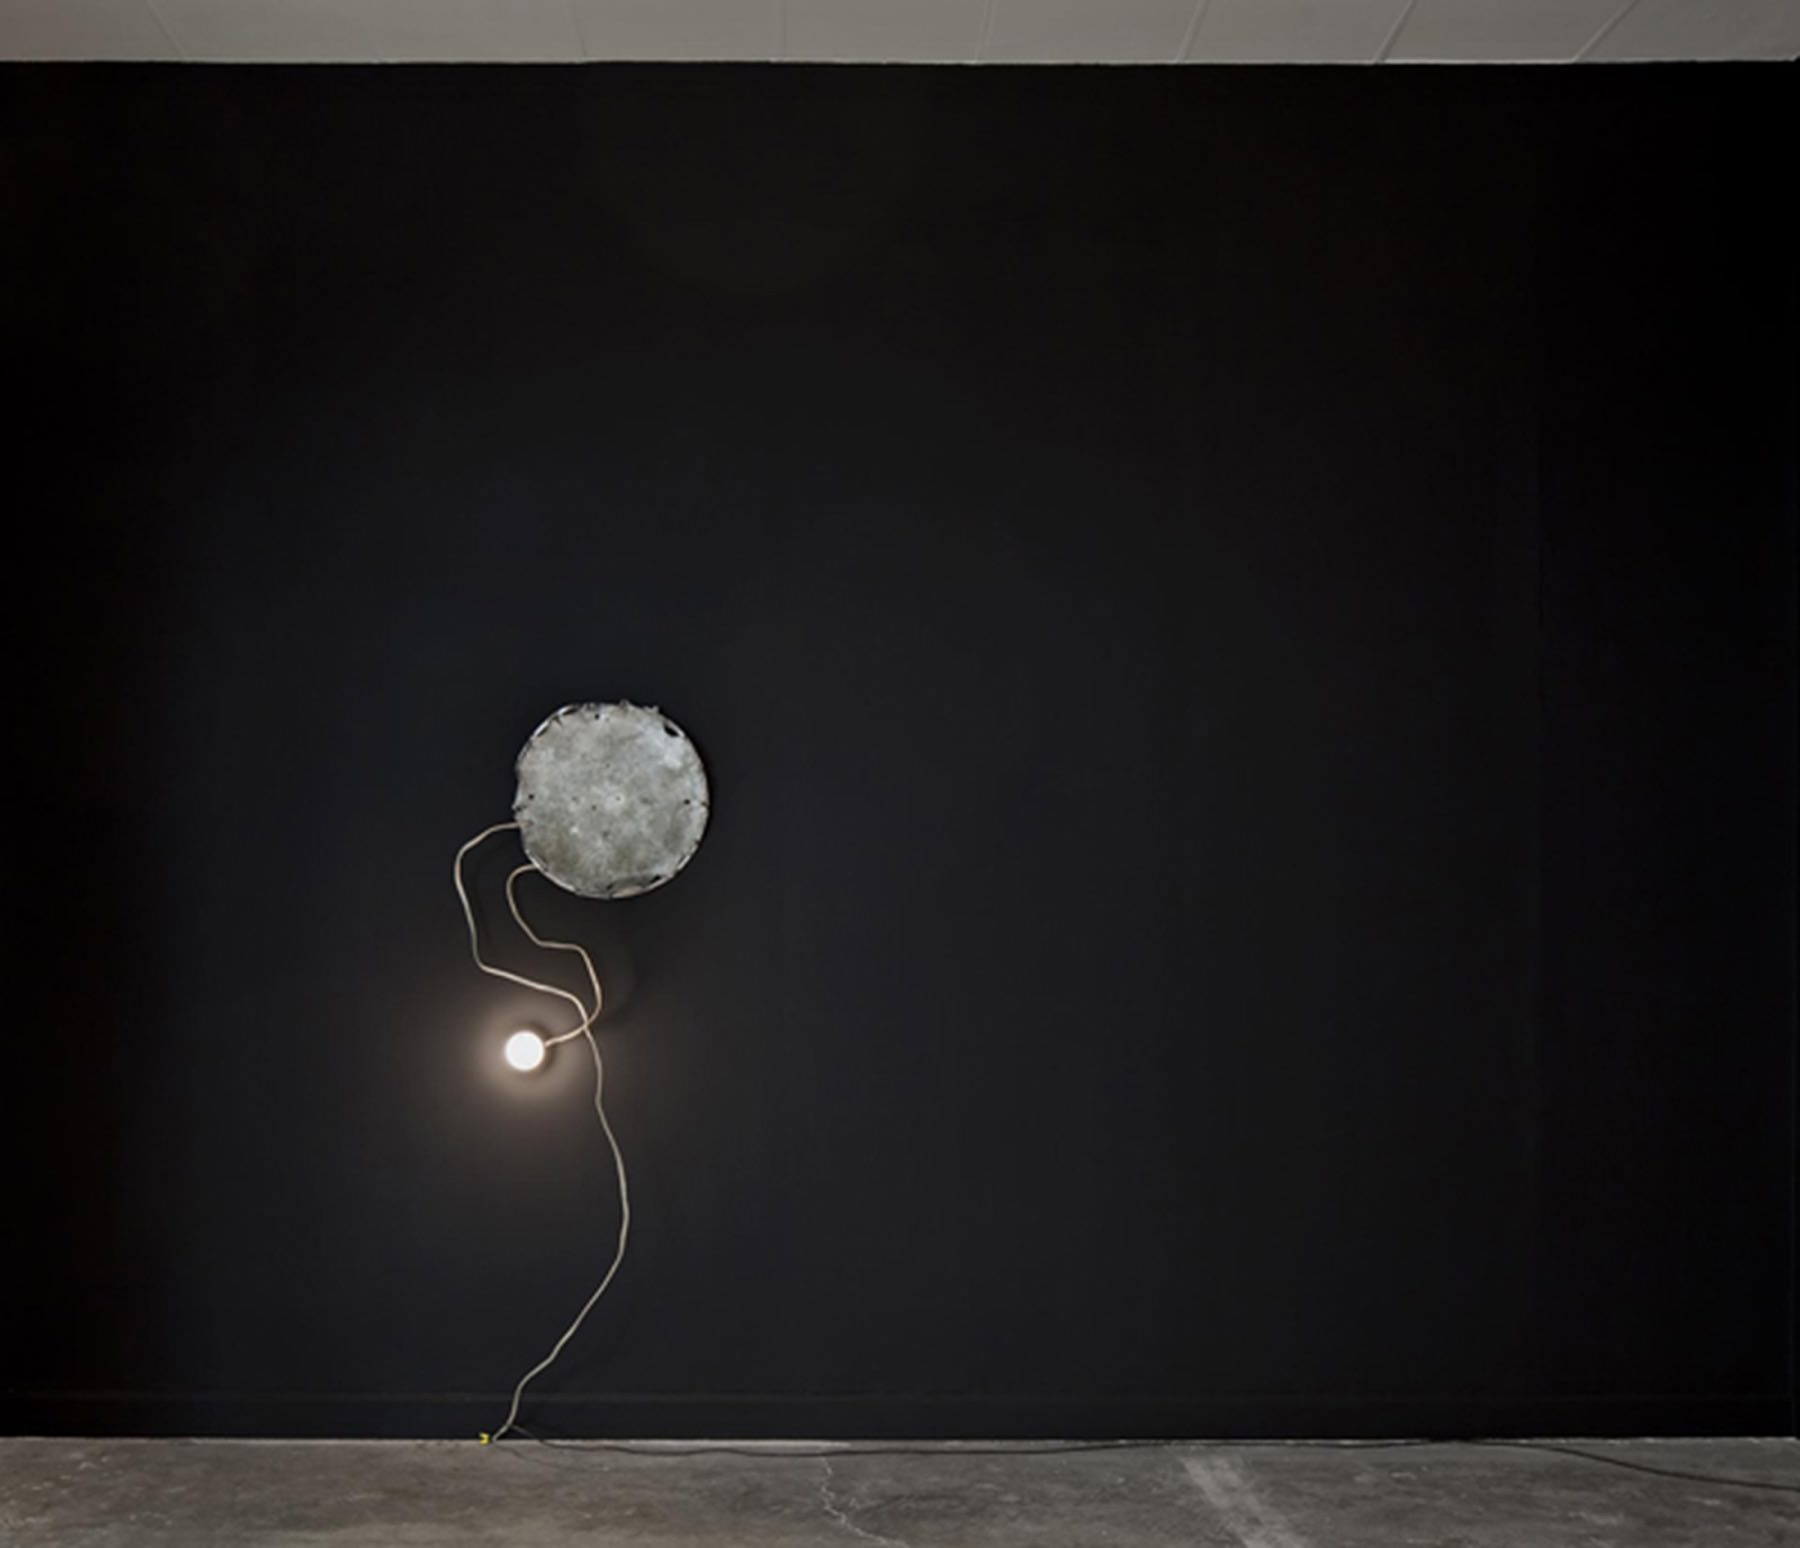 Image of Bhakti Baxter, Black Onyx Wall with Light Source, 2010